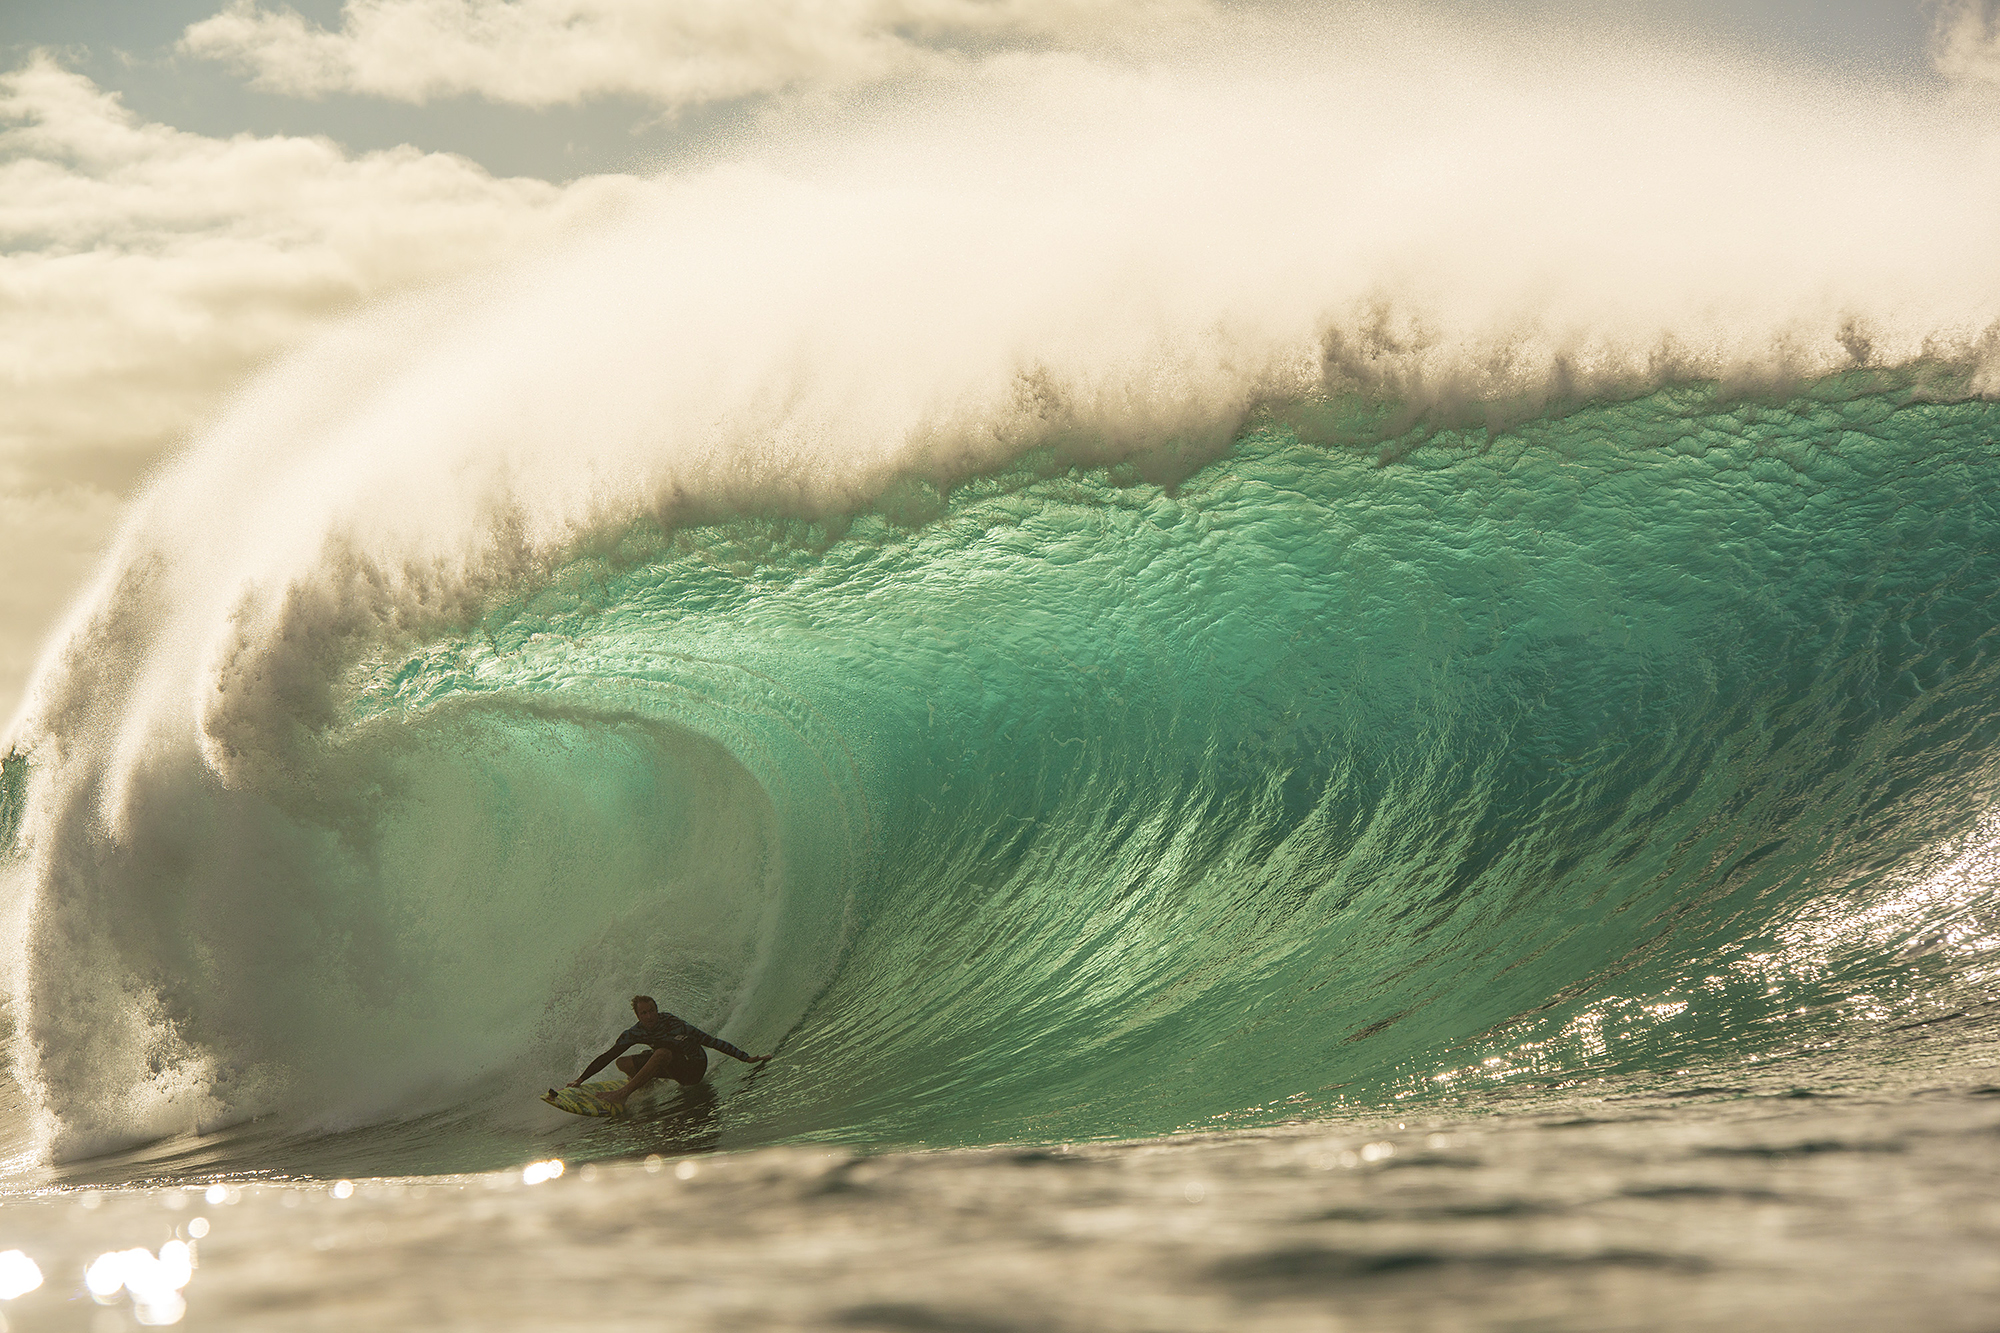 Gallery: North Pacific Overdrive (Part 2)